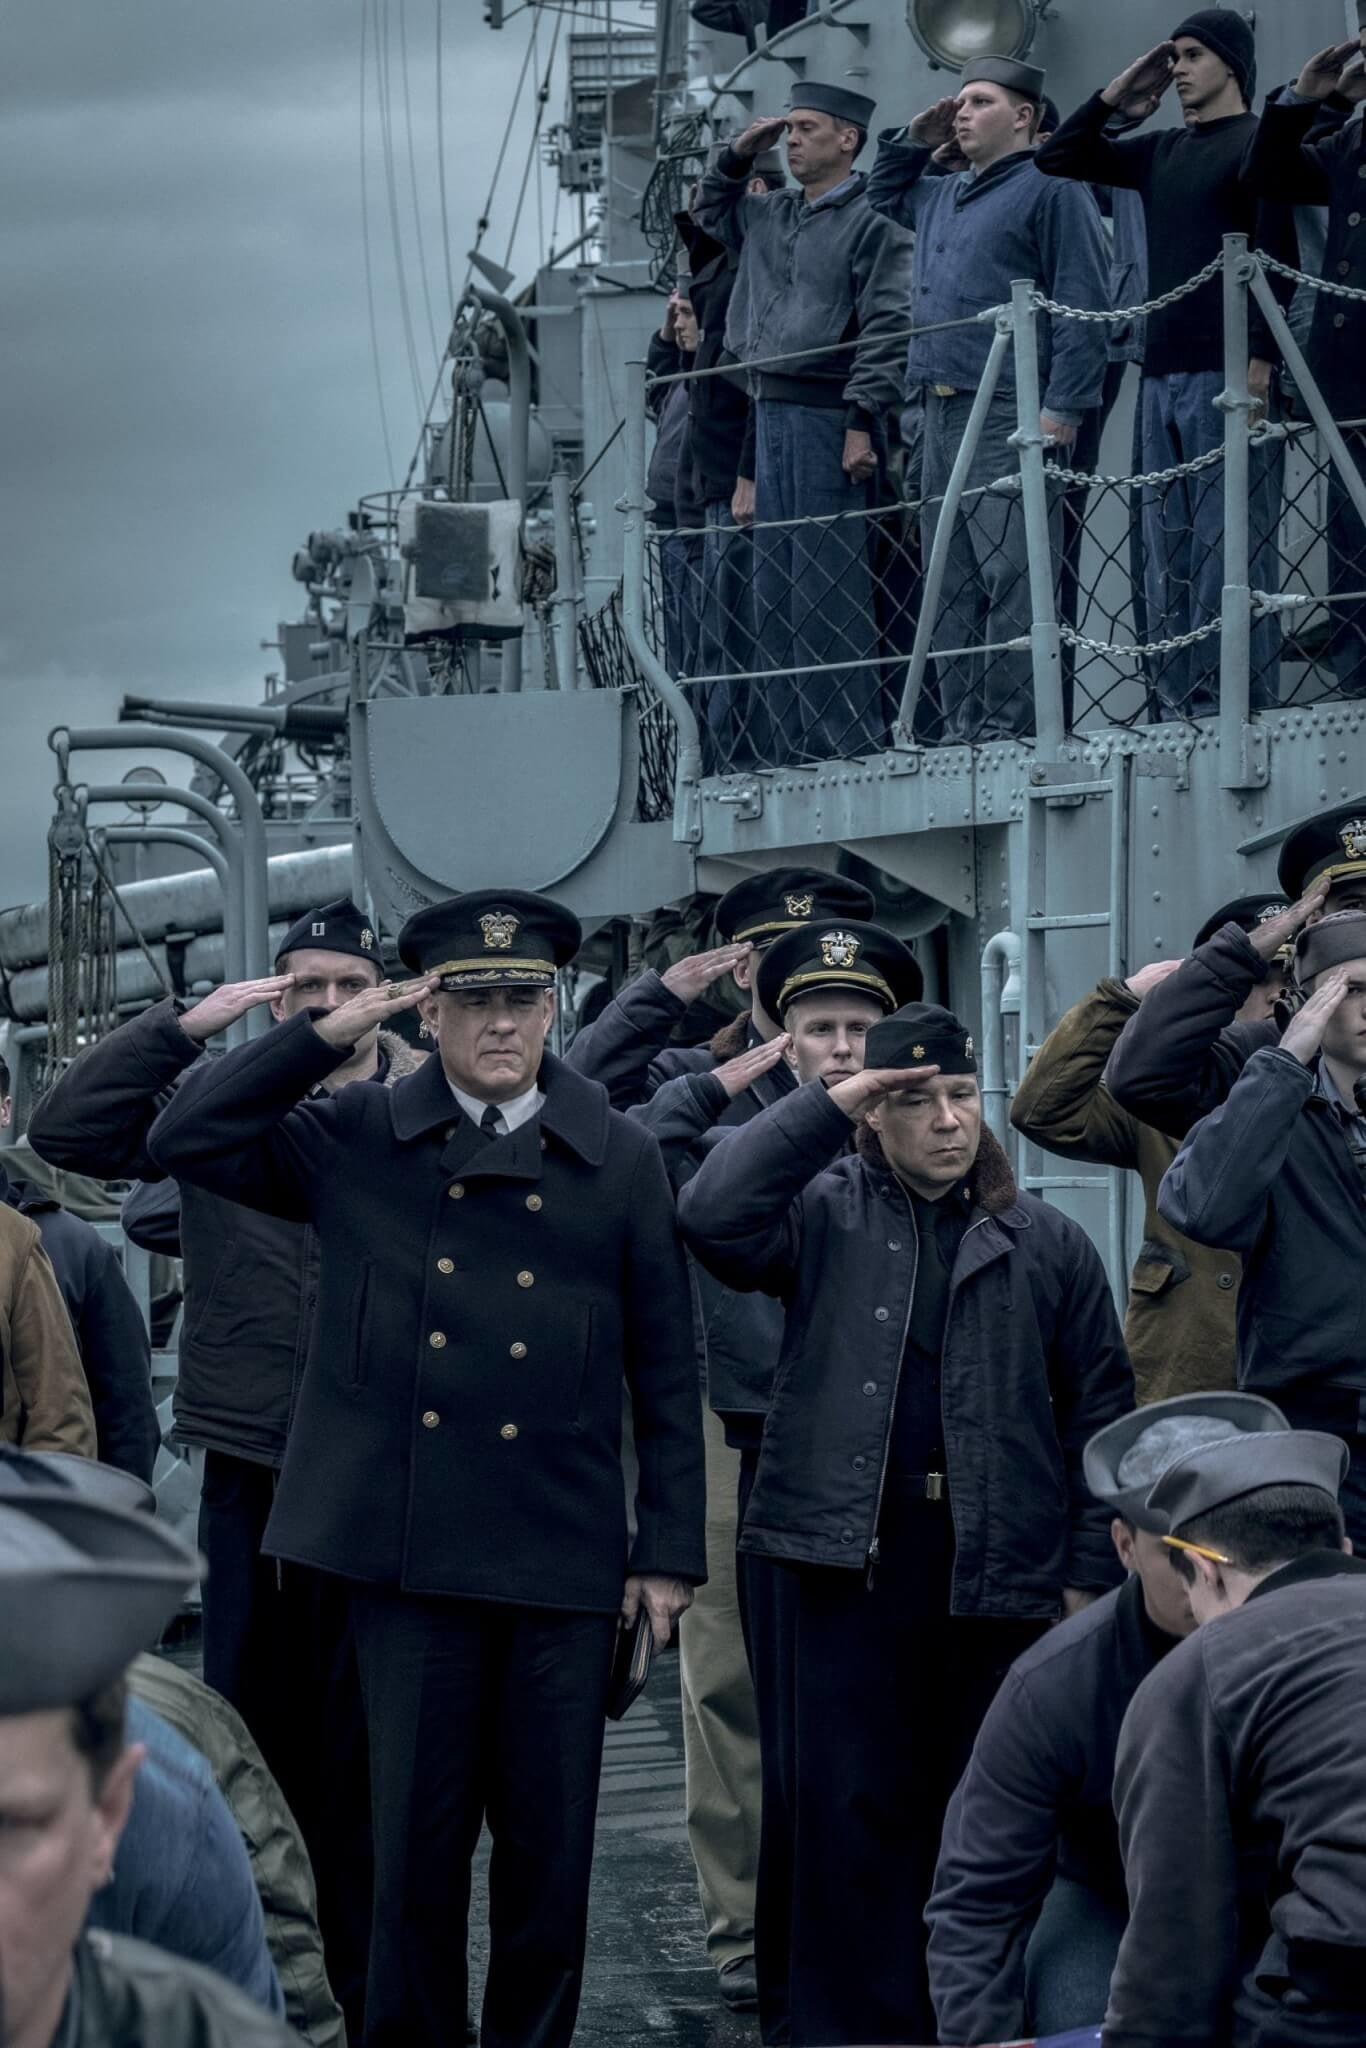 Tom Hanks stars as a naval commander in new WWII film